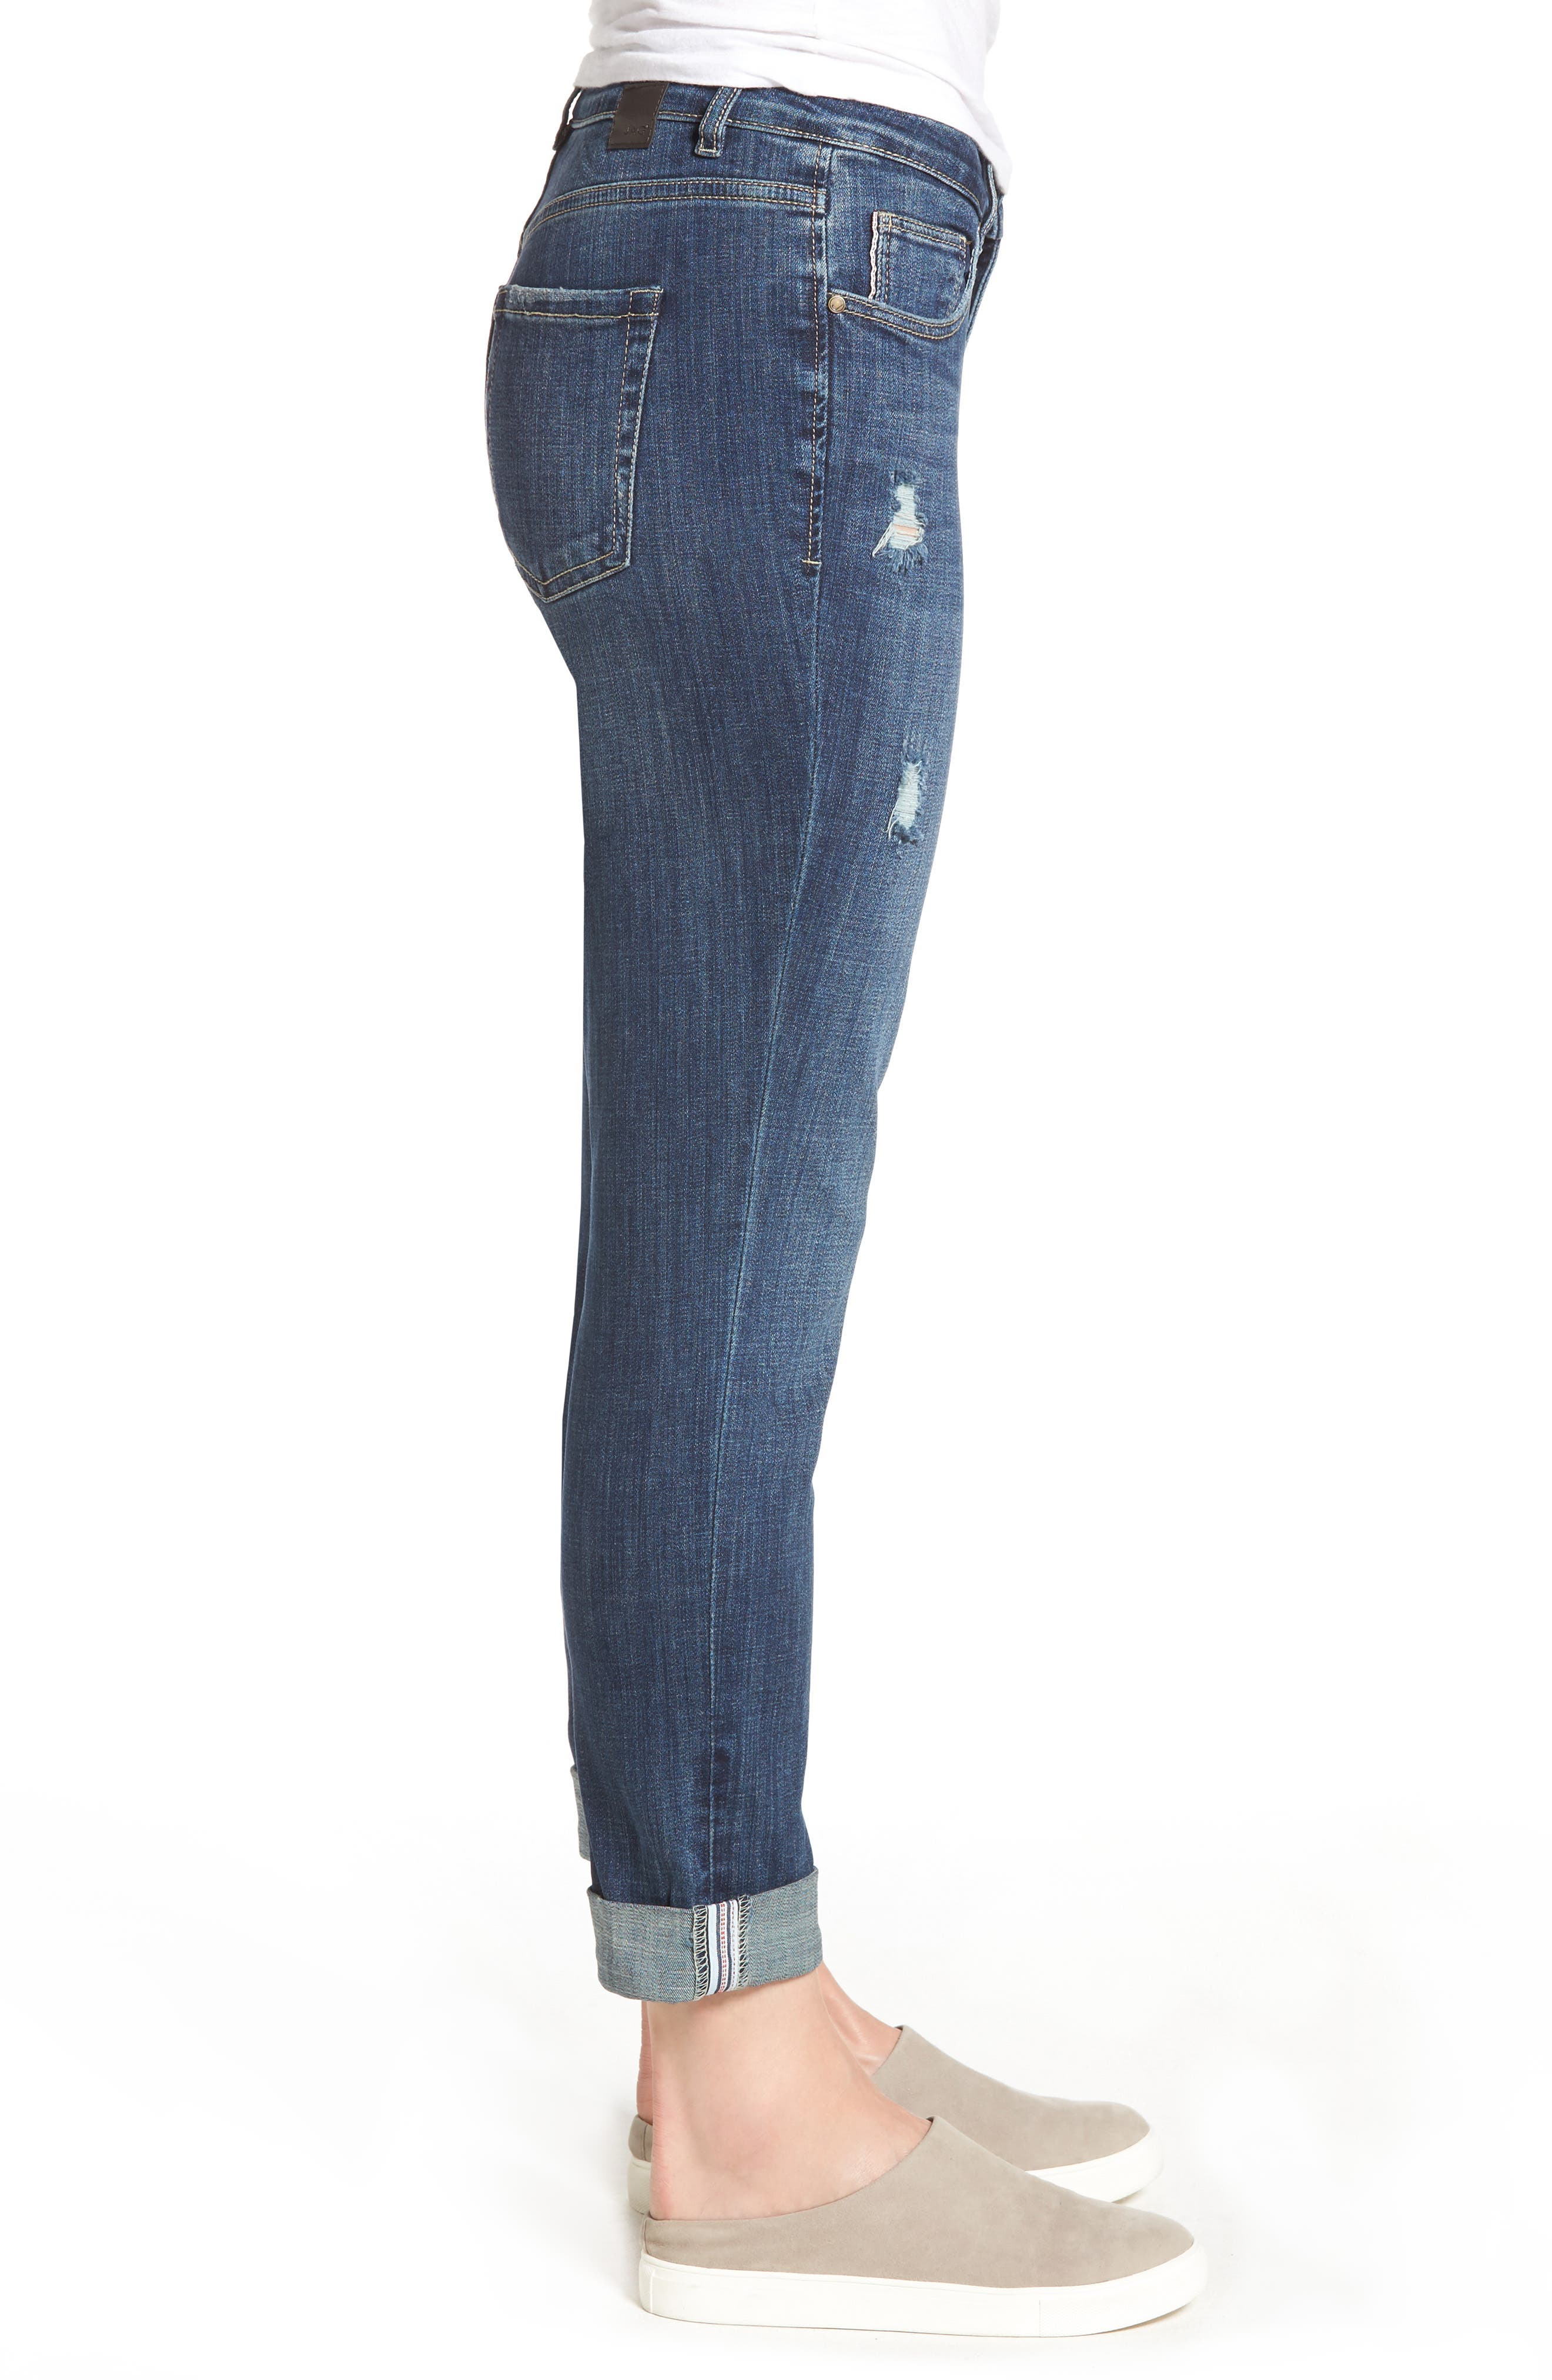 Alternate Image 3  - Jag Jeans Carter Cuffed Stretch Girlfriend Jeans